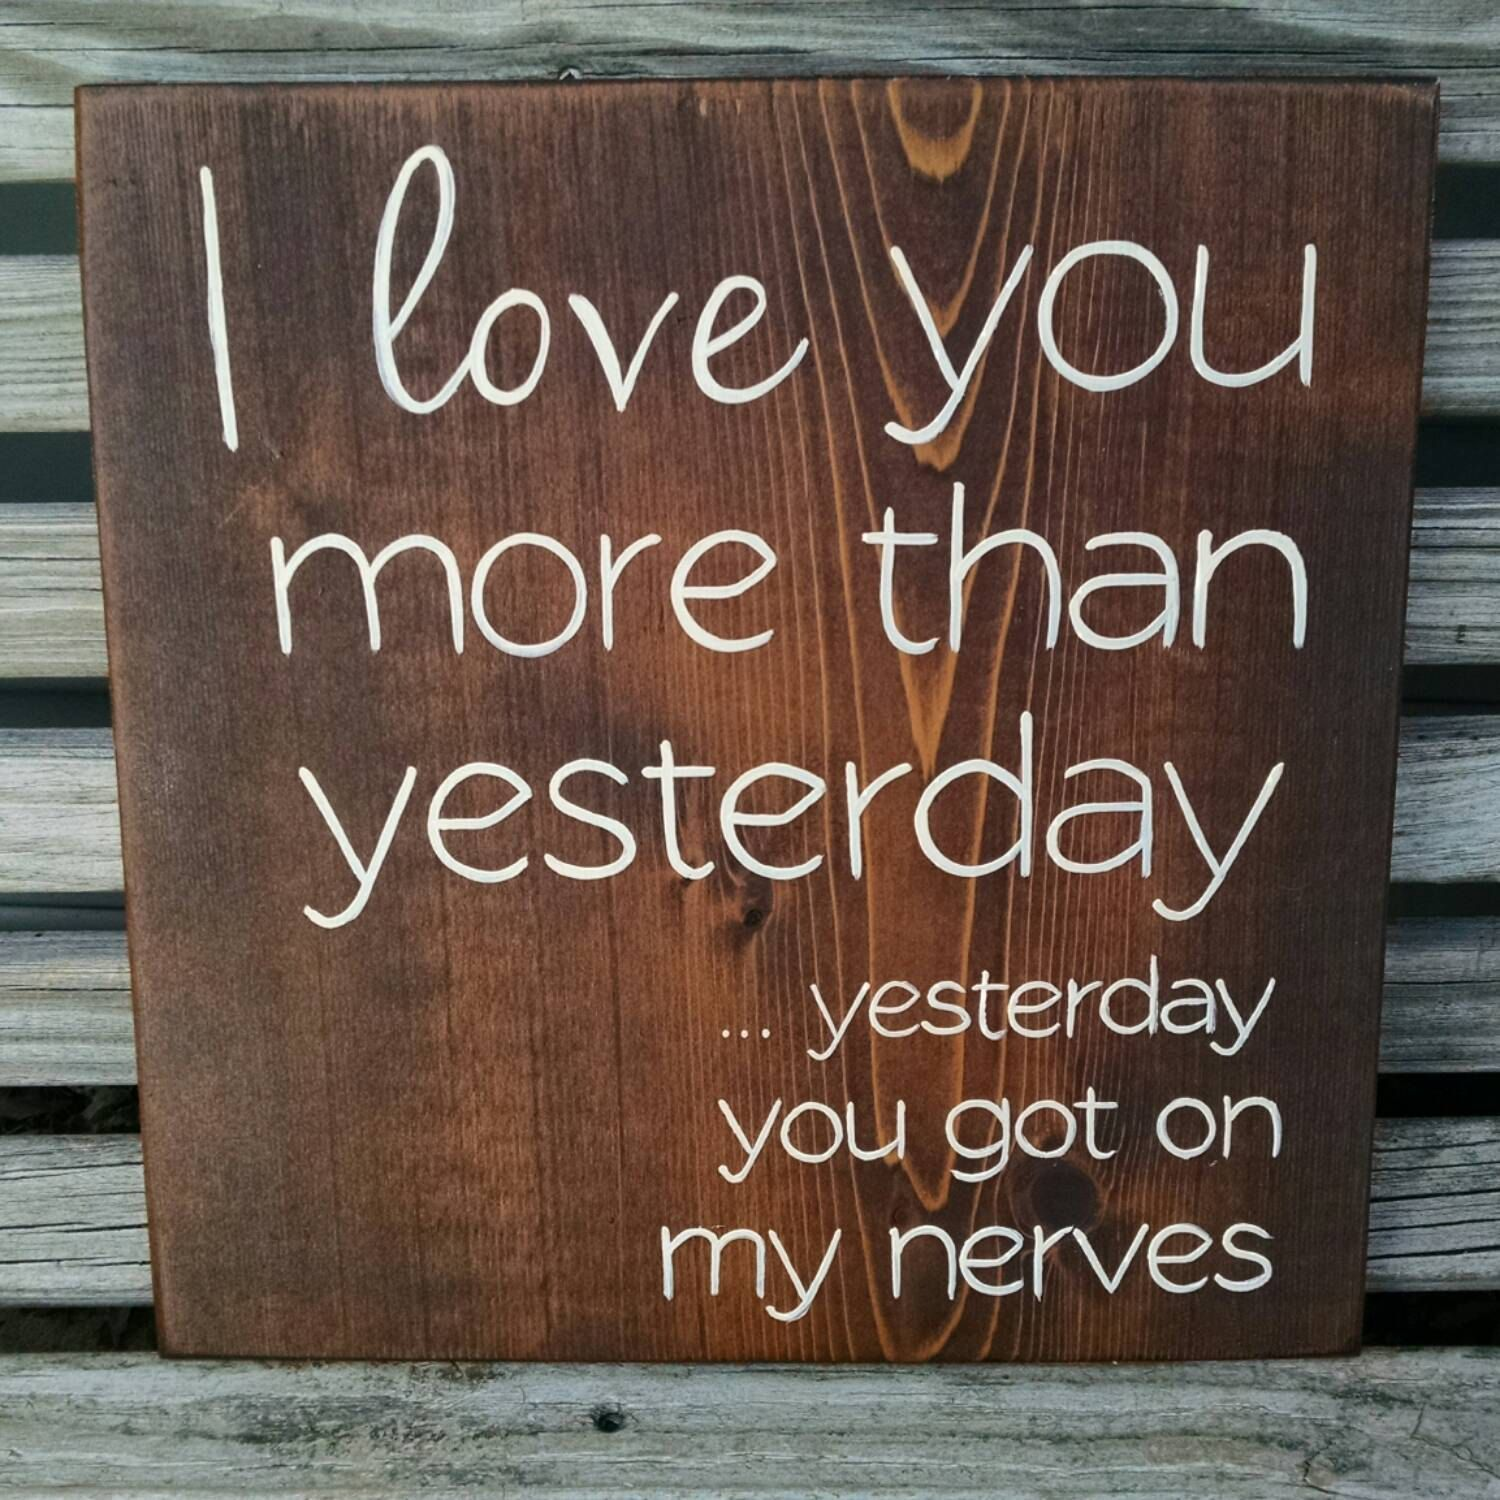 I Love You More Than Funny Quotes I Love You More Than Yesterday.yesterday You Got On My Nerves